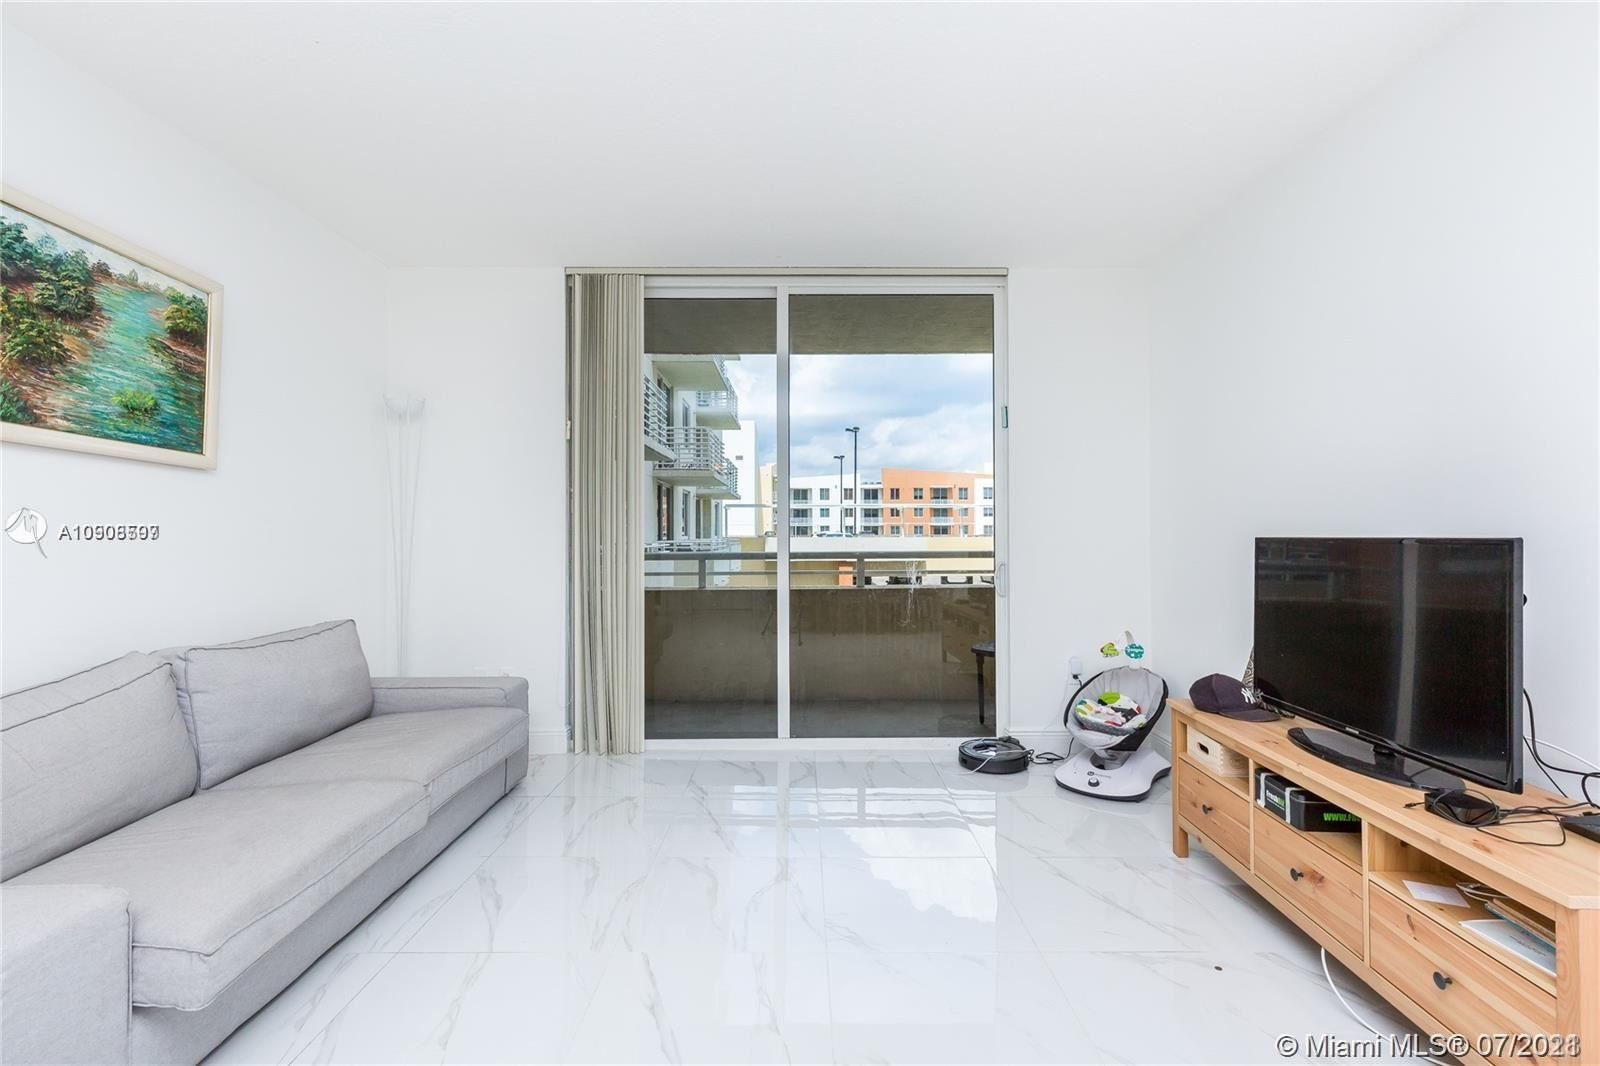 18800 NE 29th Ave #522, Aventura, FL 33180 - #: A10908597